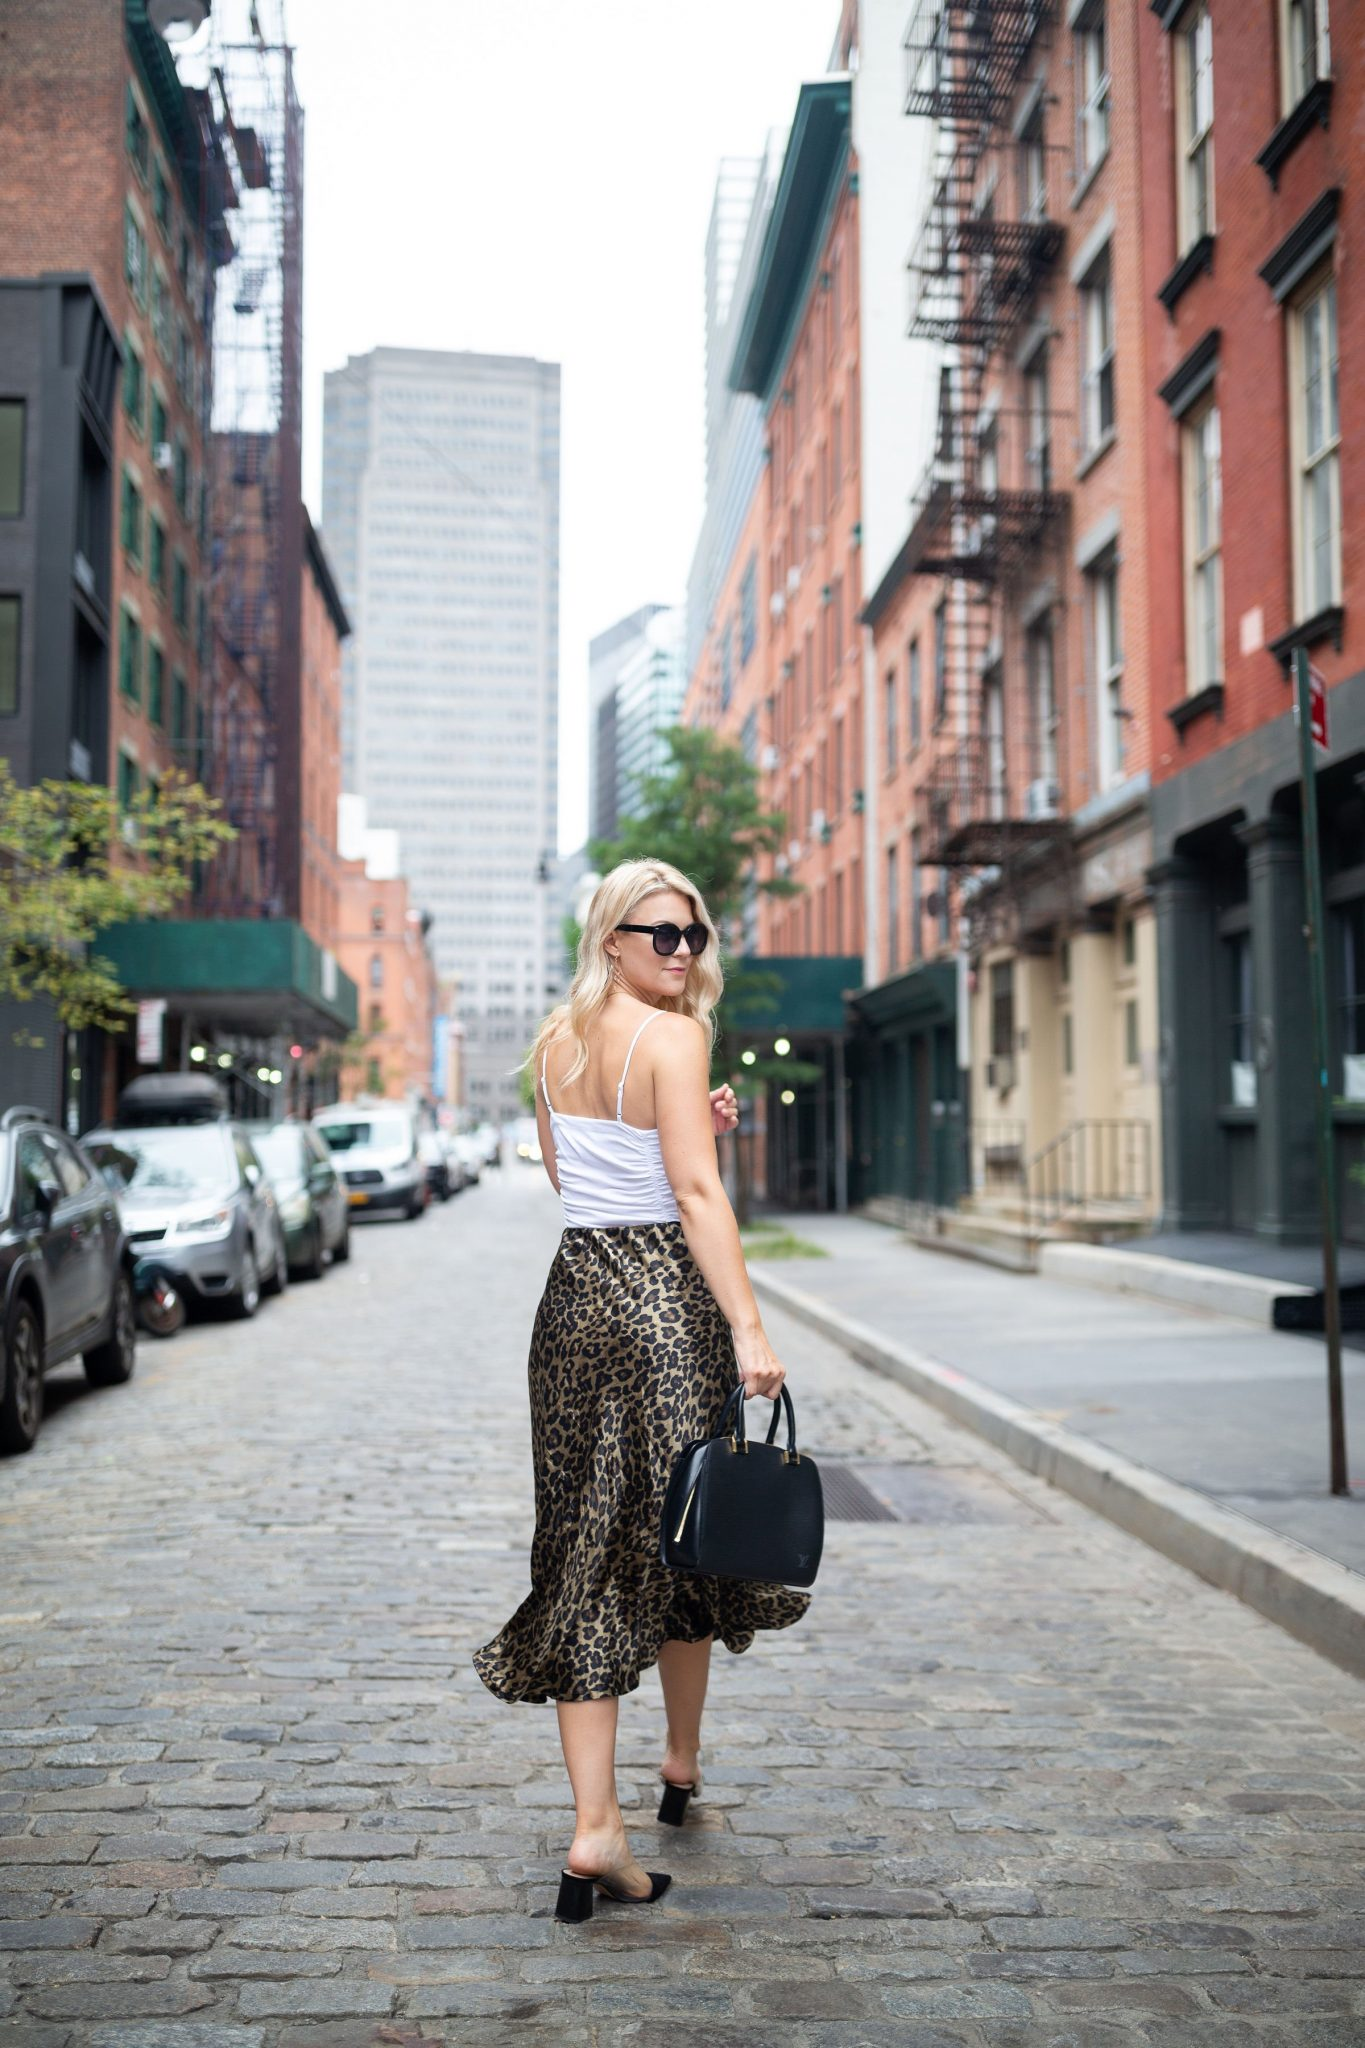 Leopard Skirt by popular Seattle tall fashion blog, Whit Wanders: image of a woman walking down a cobblestone street and wearing a Free People Bodysuit, Zara Leopard Skirt, Zara Black Heels, and holding Louis Vuitton Tote.